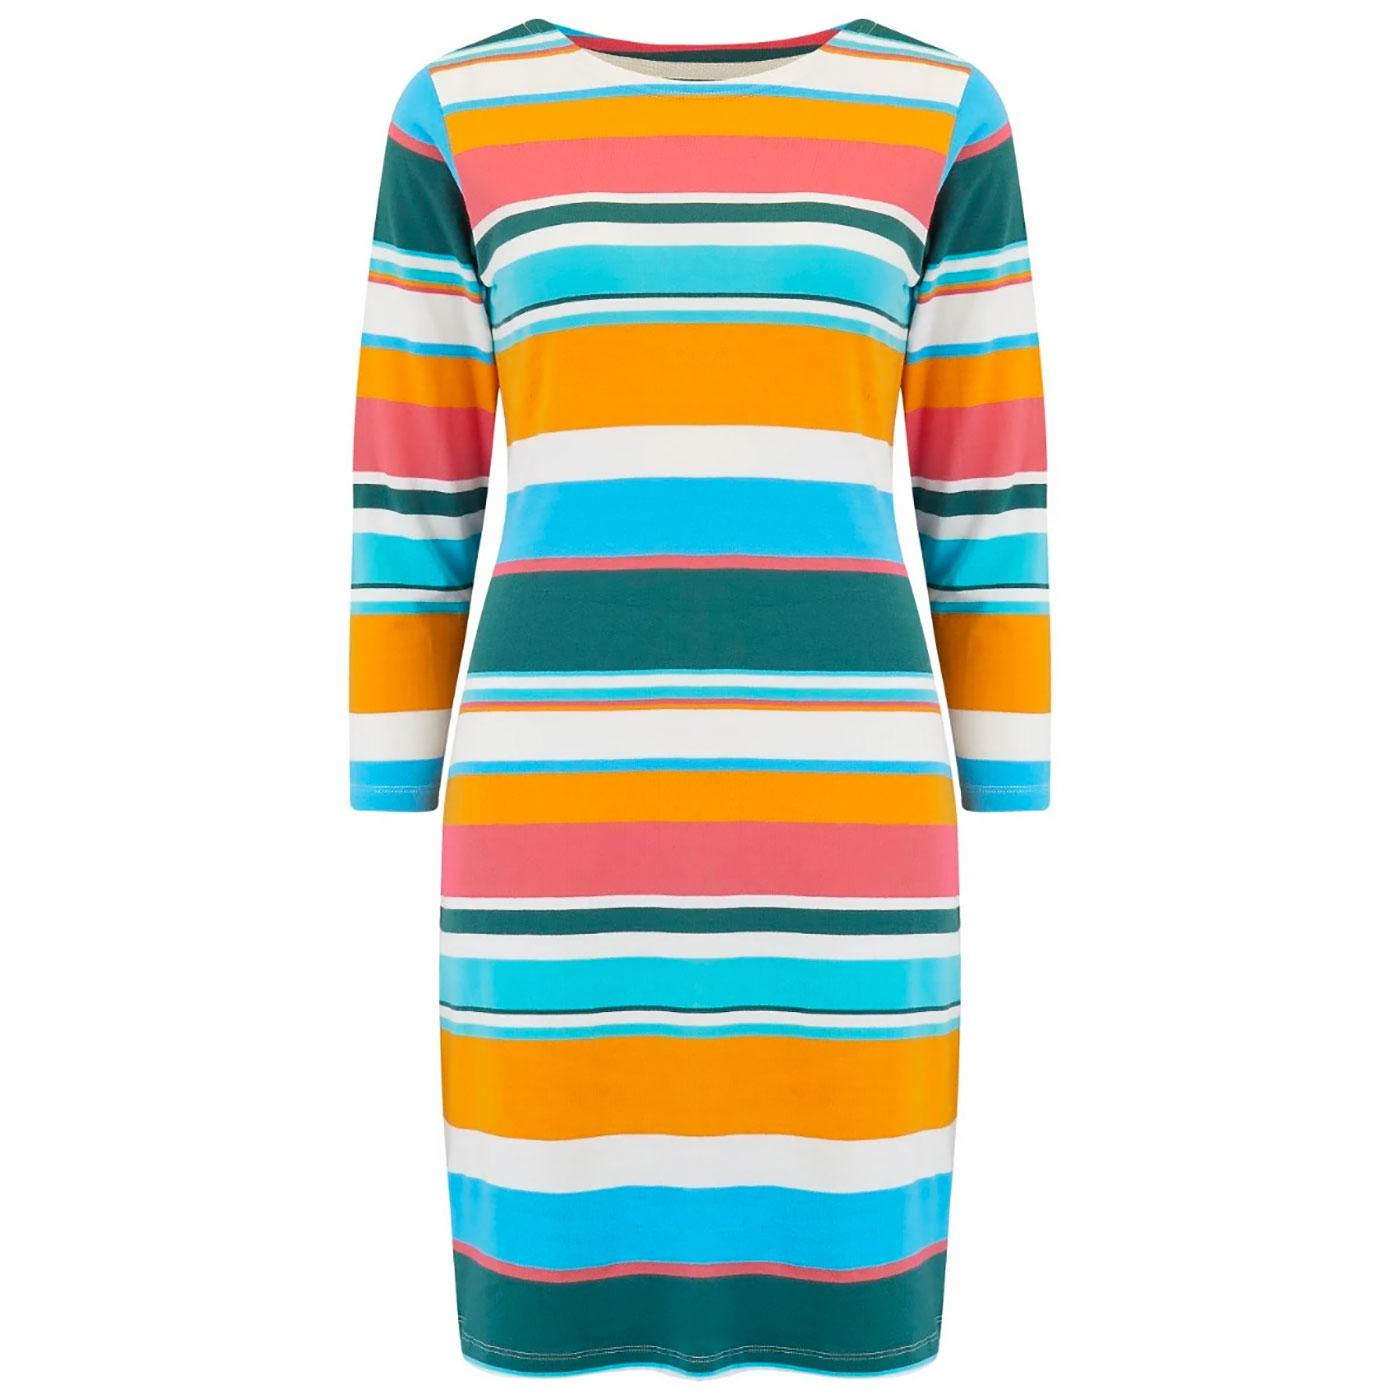 Brighton SUGARHILL Retro 60s Riviera Stripe Dress